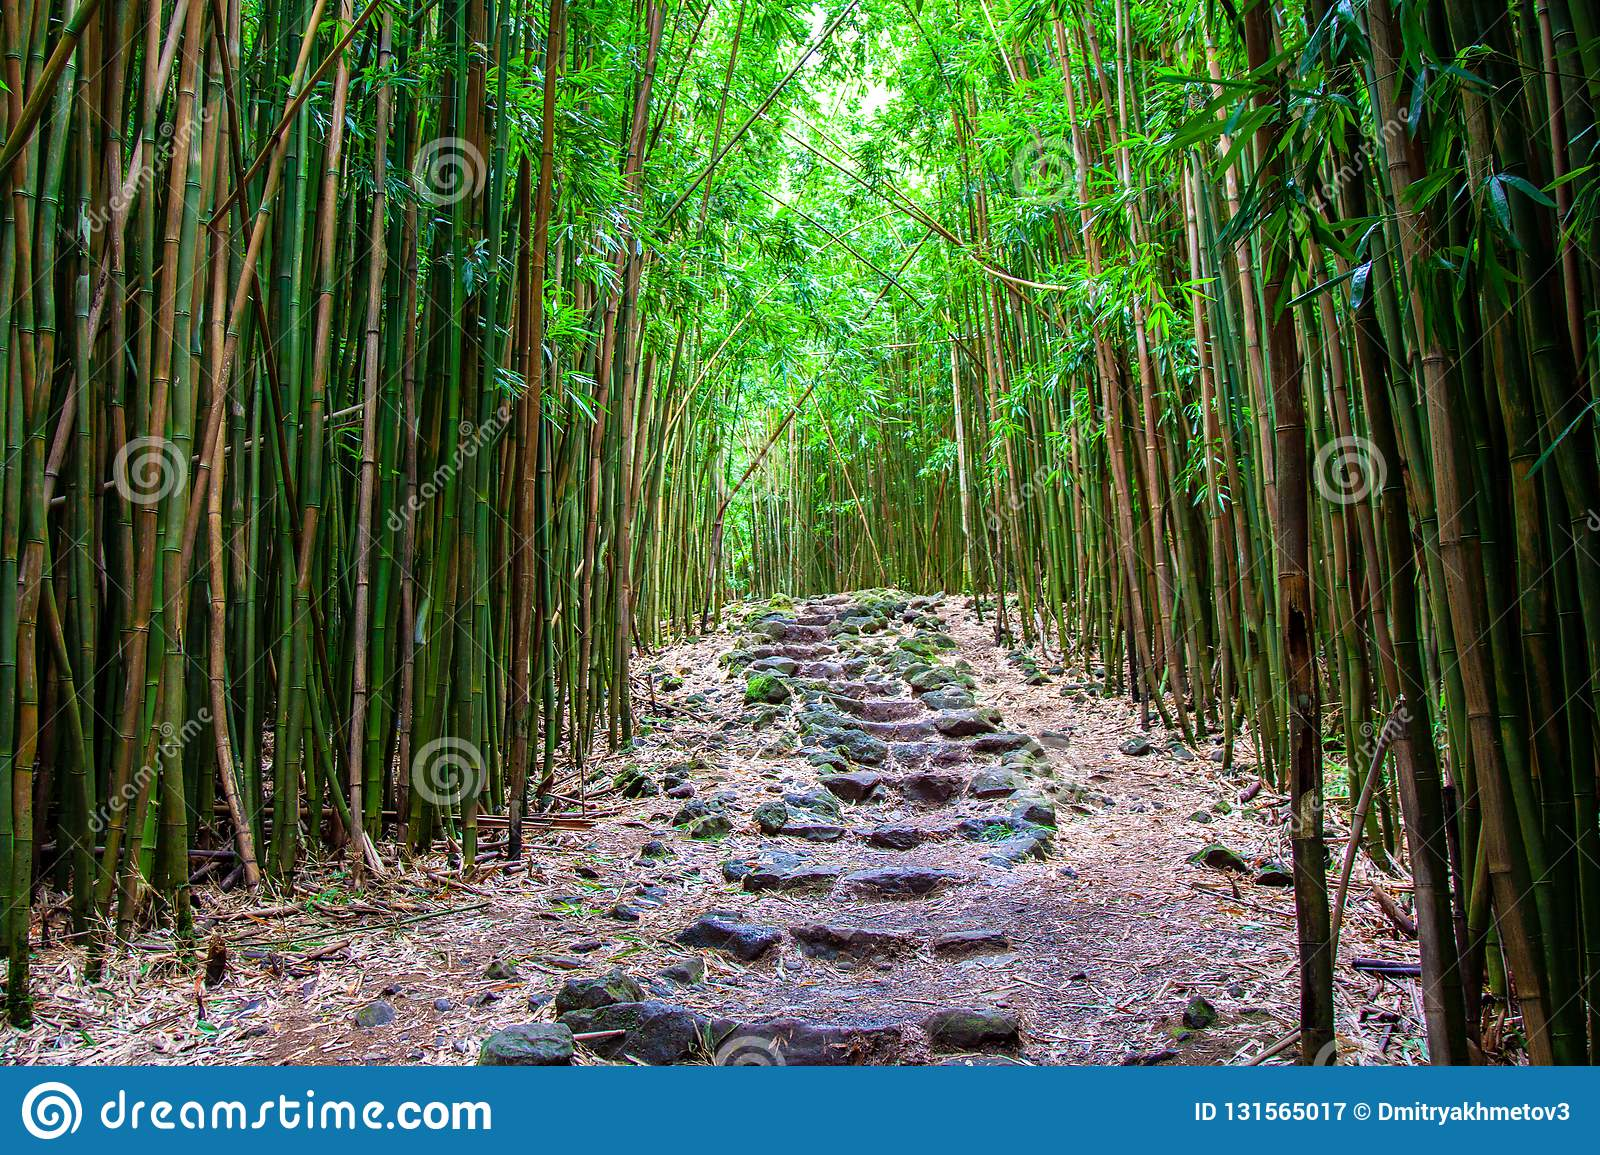 Stone steps at bamboo forest